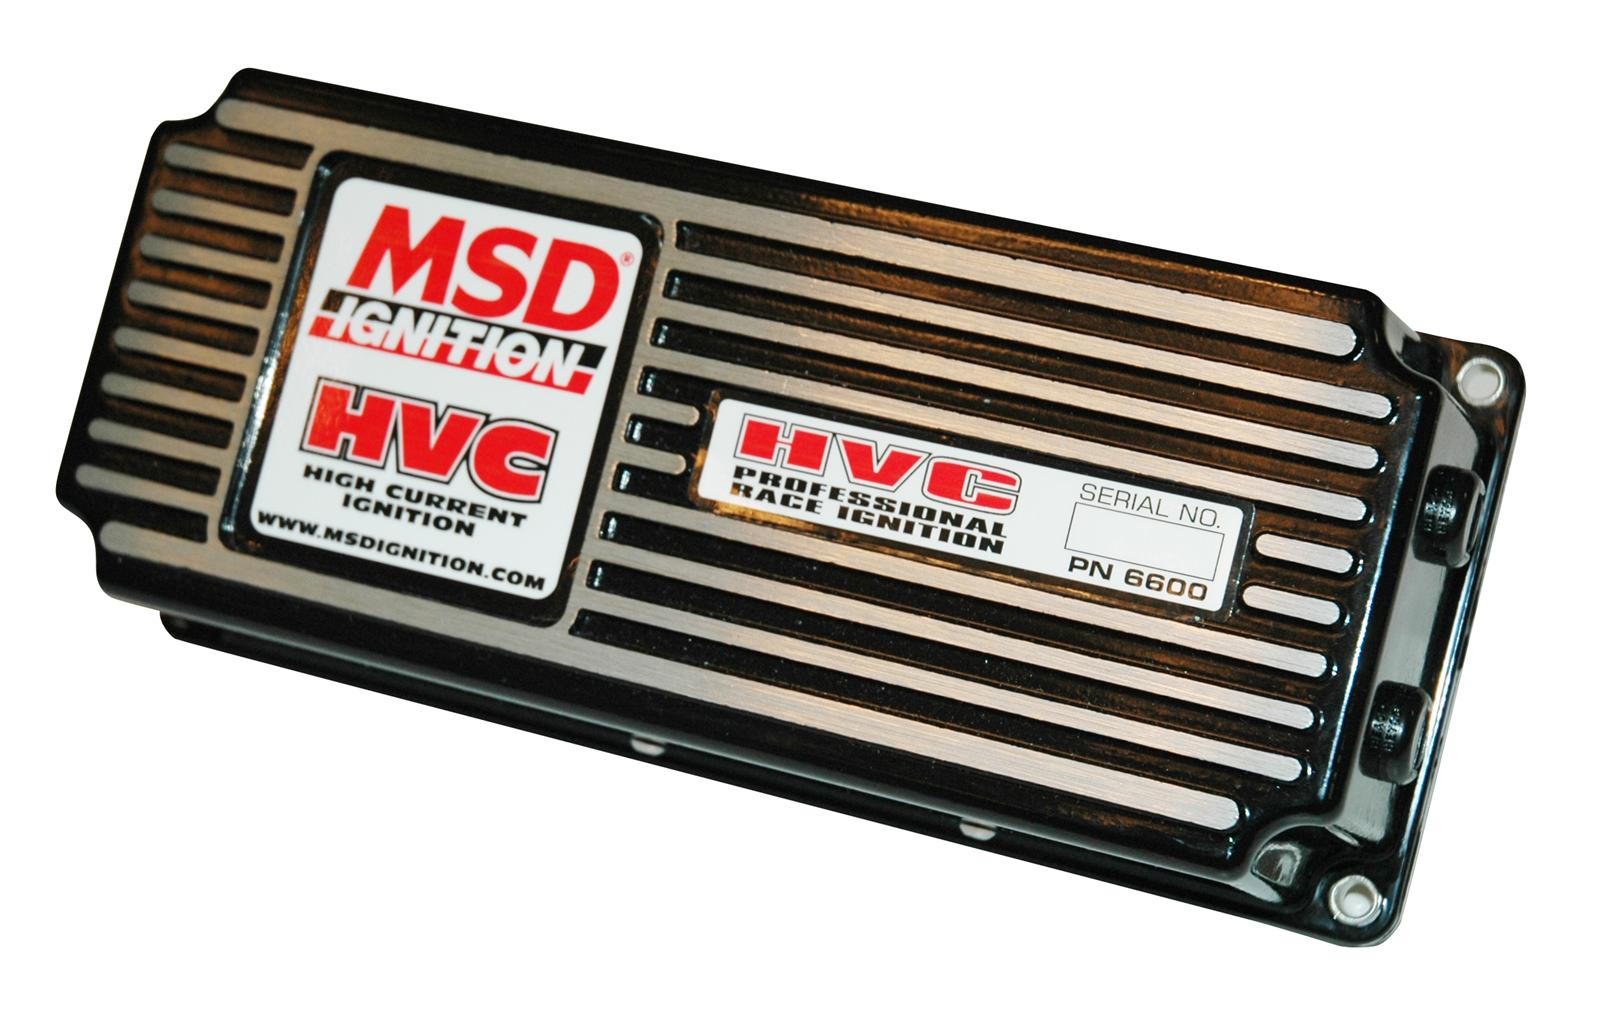 MSD 6 HVC CD Ignitions 6600 - Free Shipping on Orders Over $49 at Summit  Racing